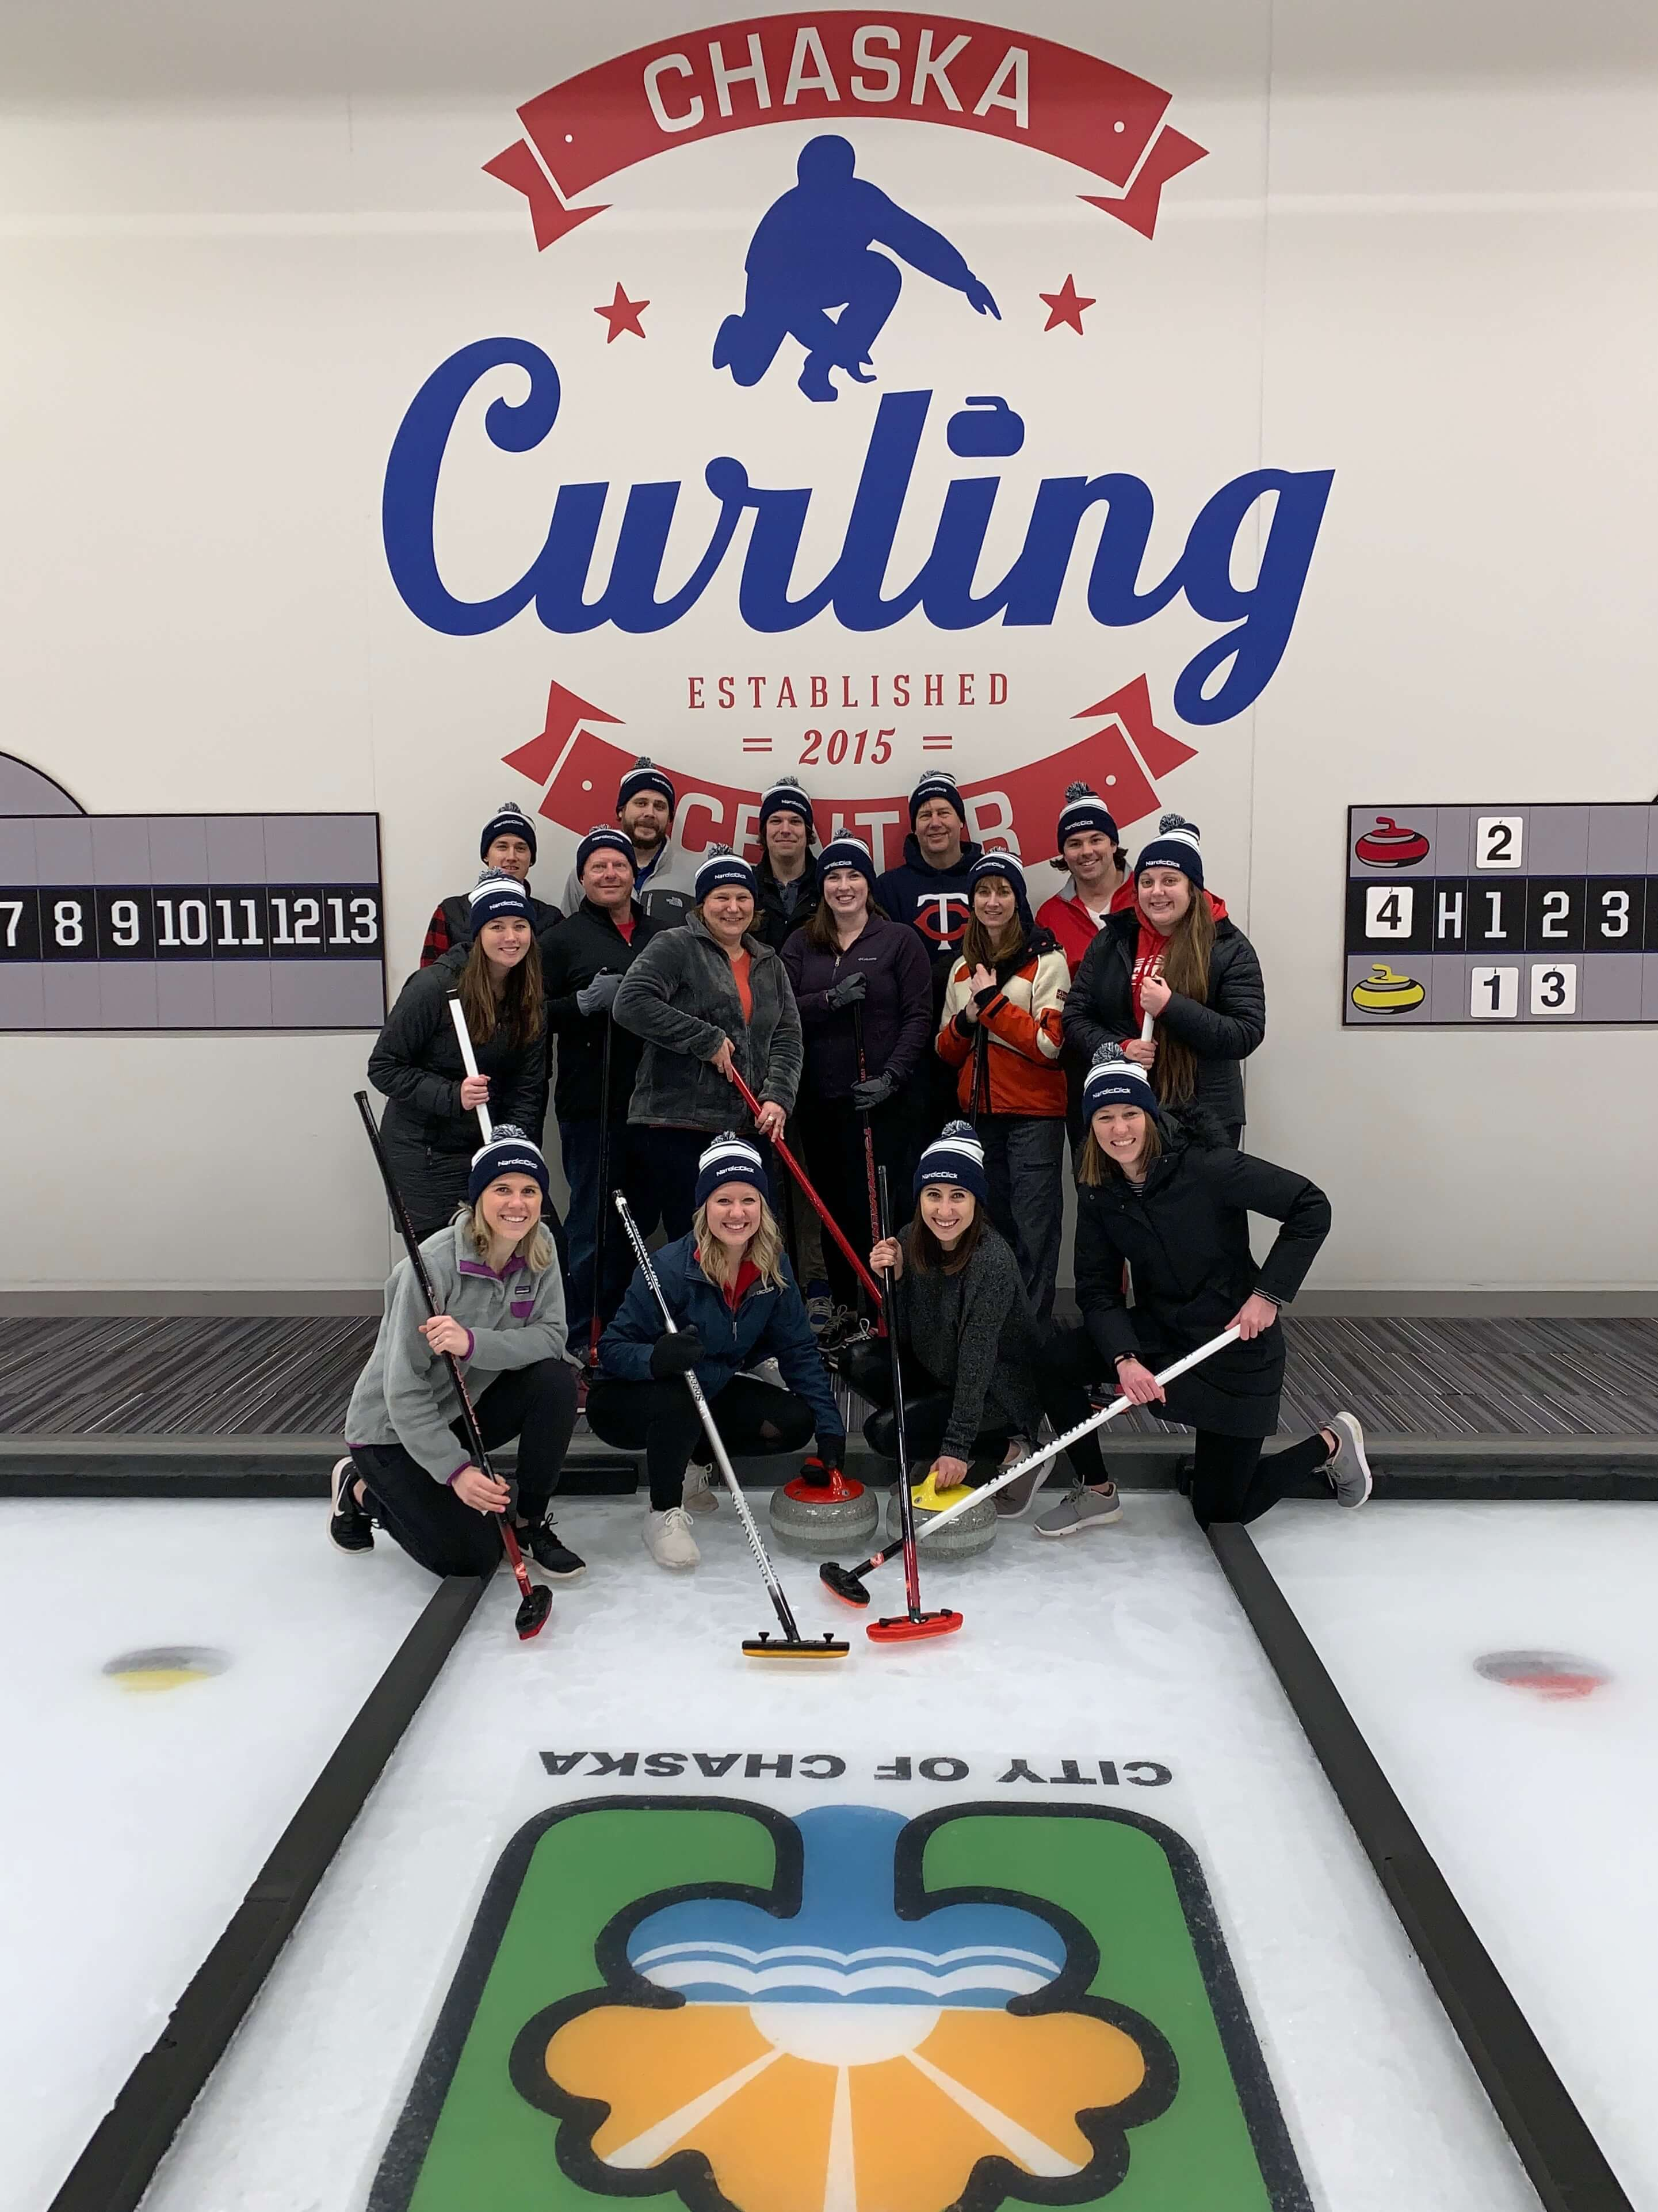 NordicClick staff at a team bonding event at the Chaska Curling Center